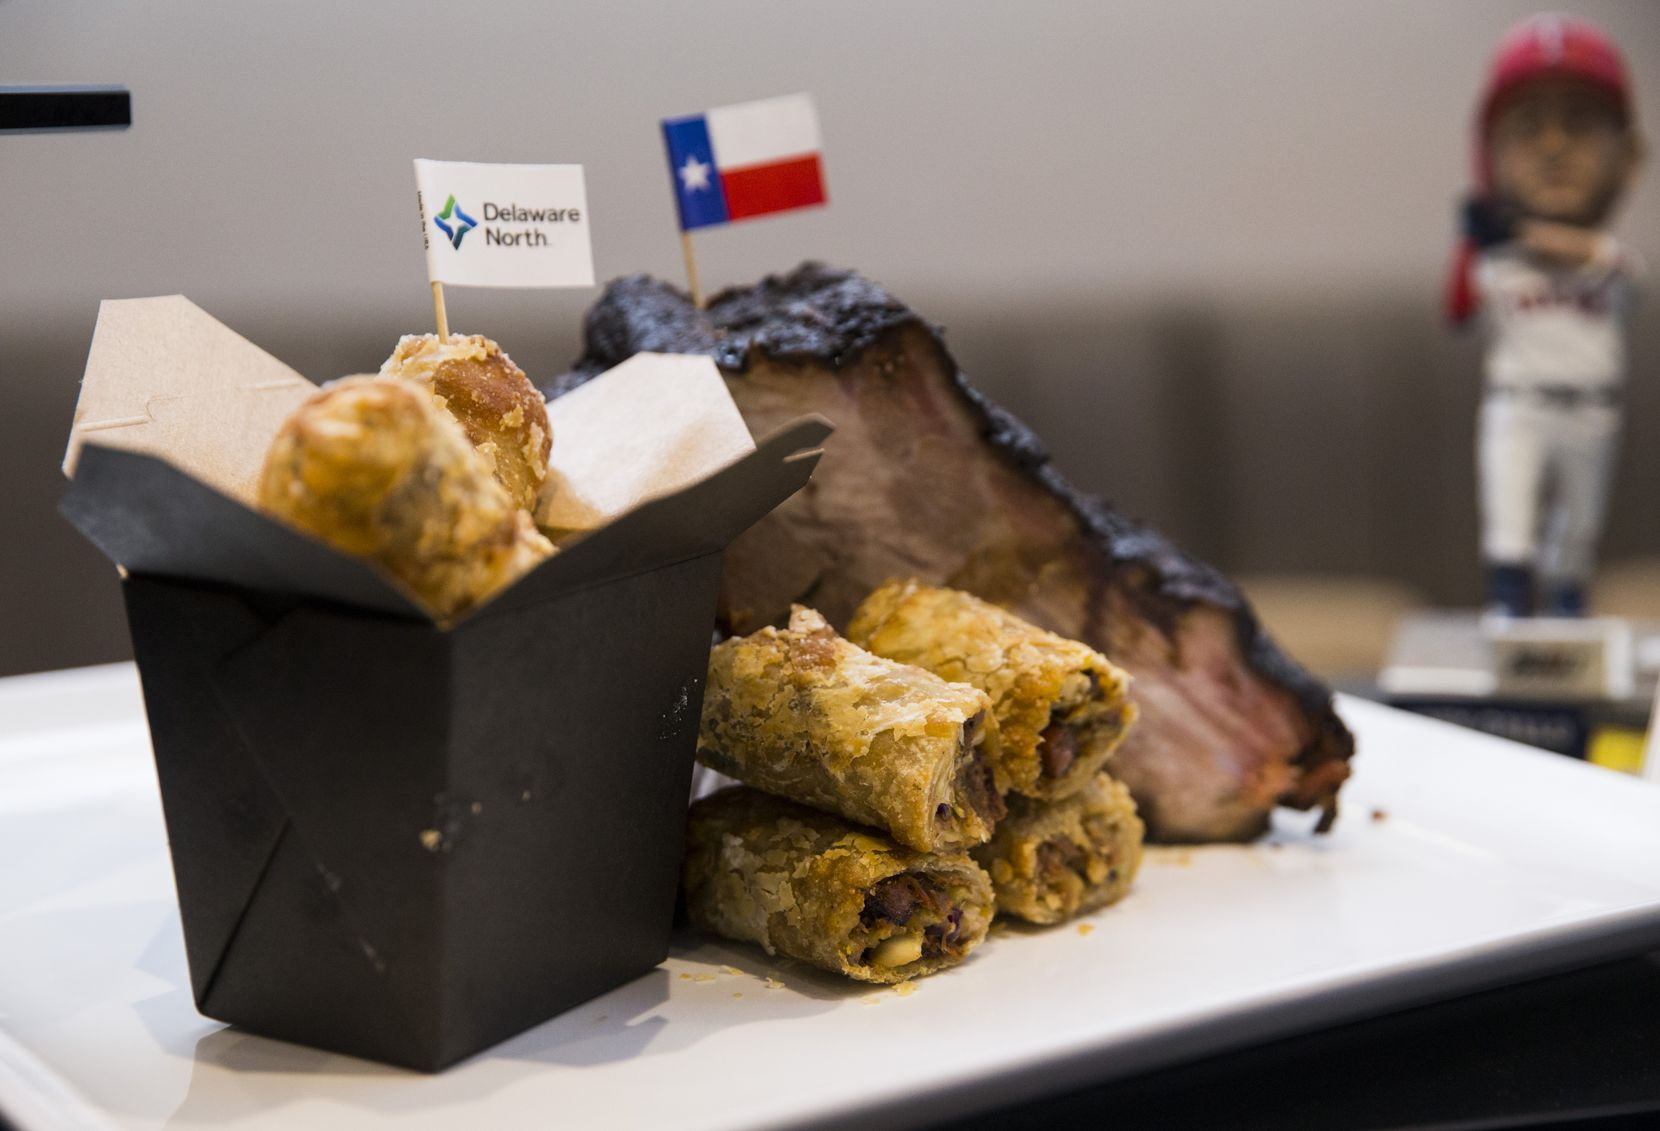 The Brisket egg rolls were created after a Rangers fan in Utah sent in the recipe.